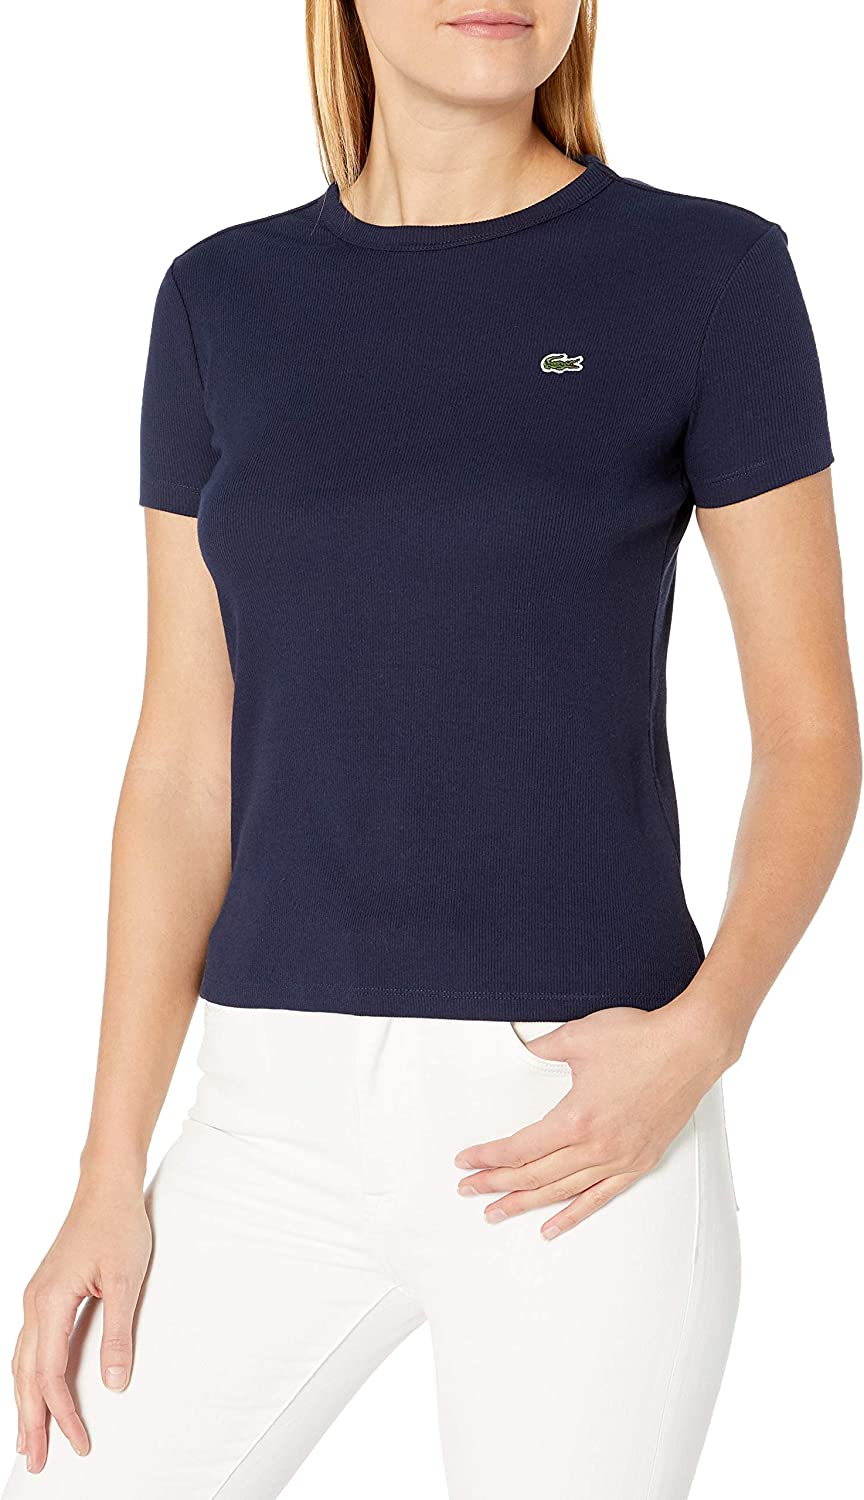 Lacoste Women's Short Sleeve Ribbed Crewneck T-Shirt